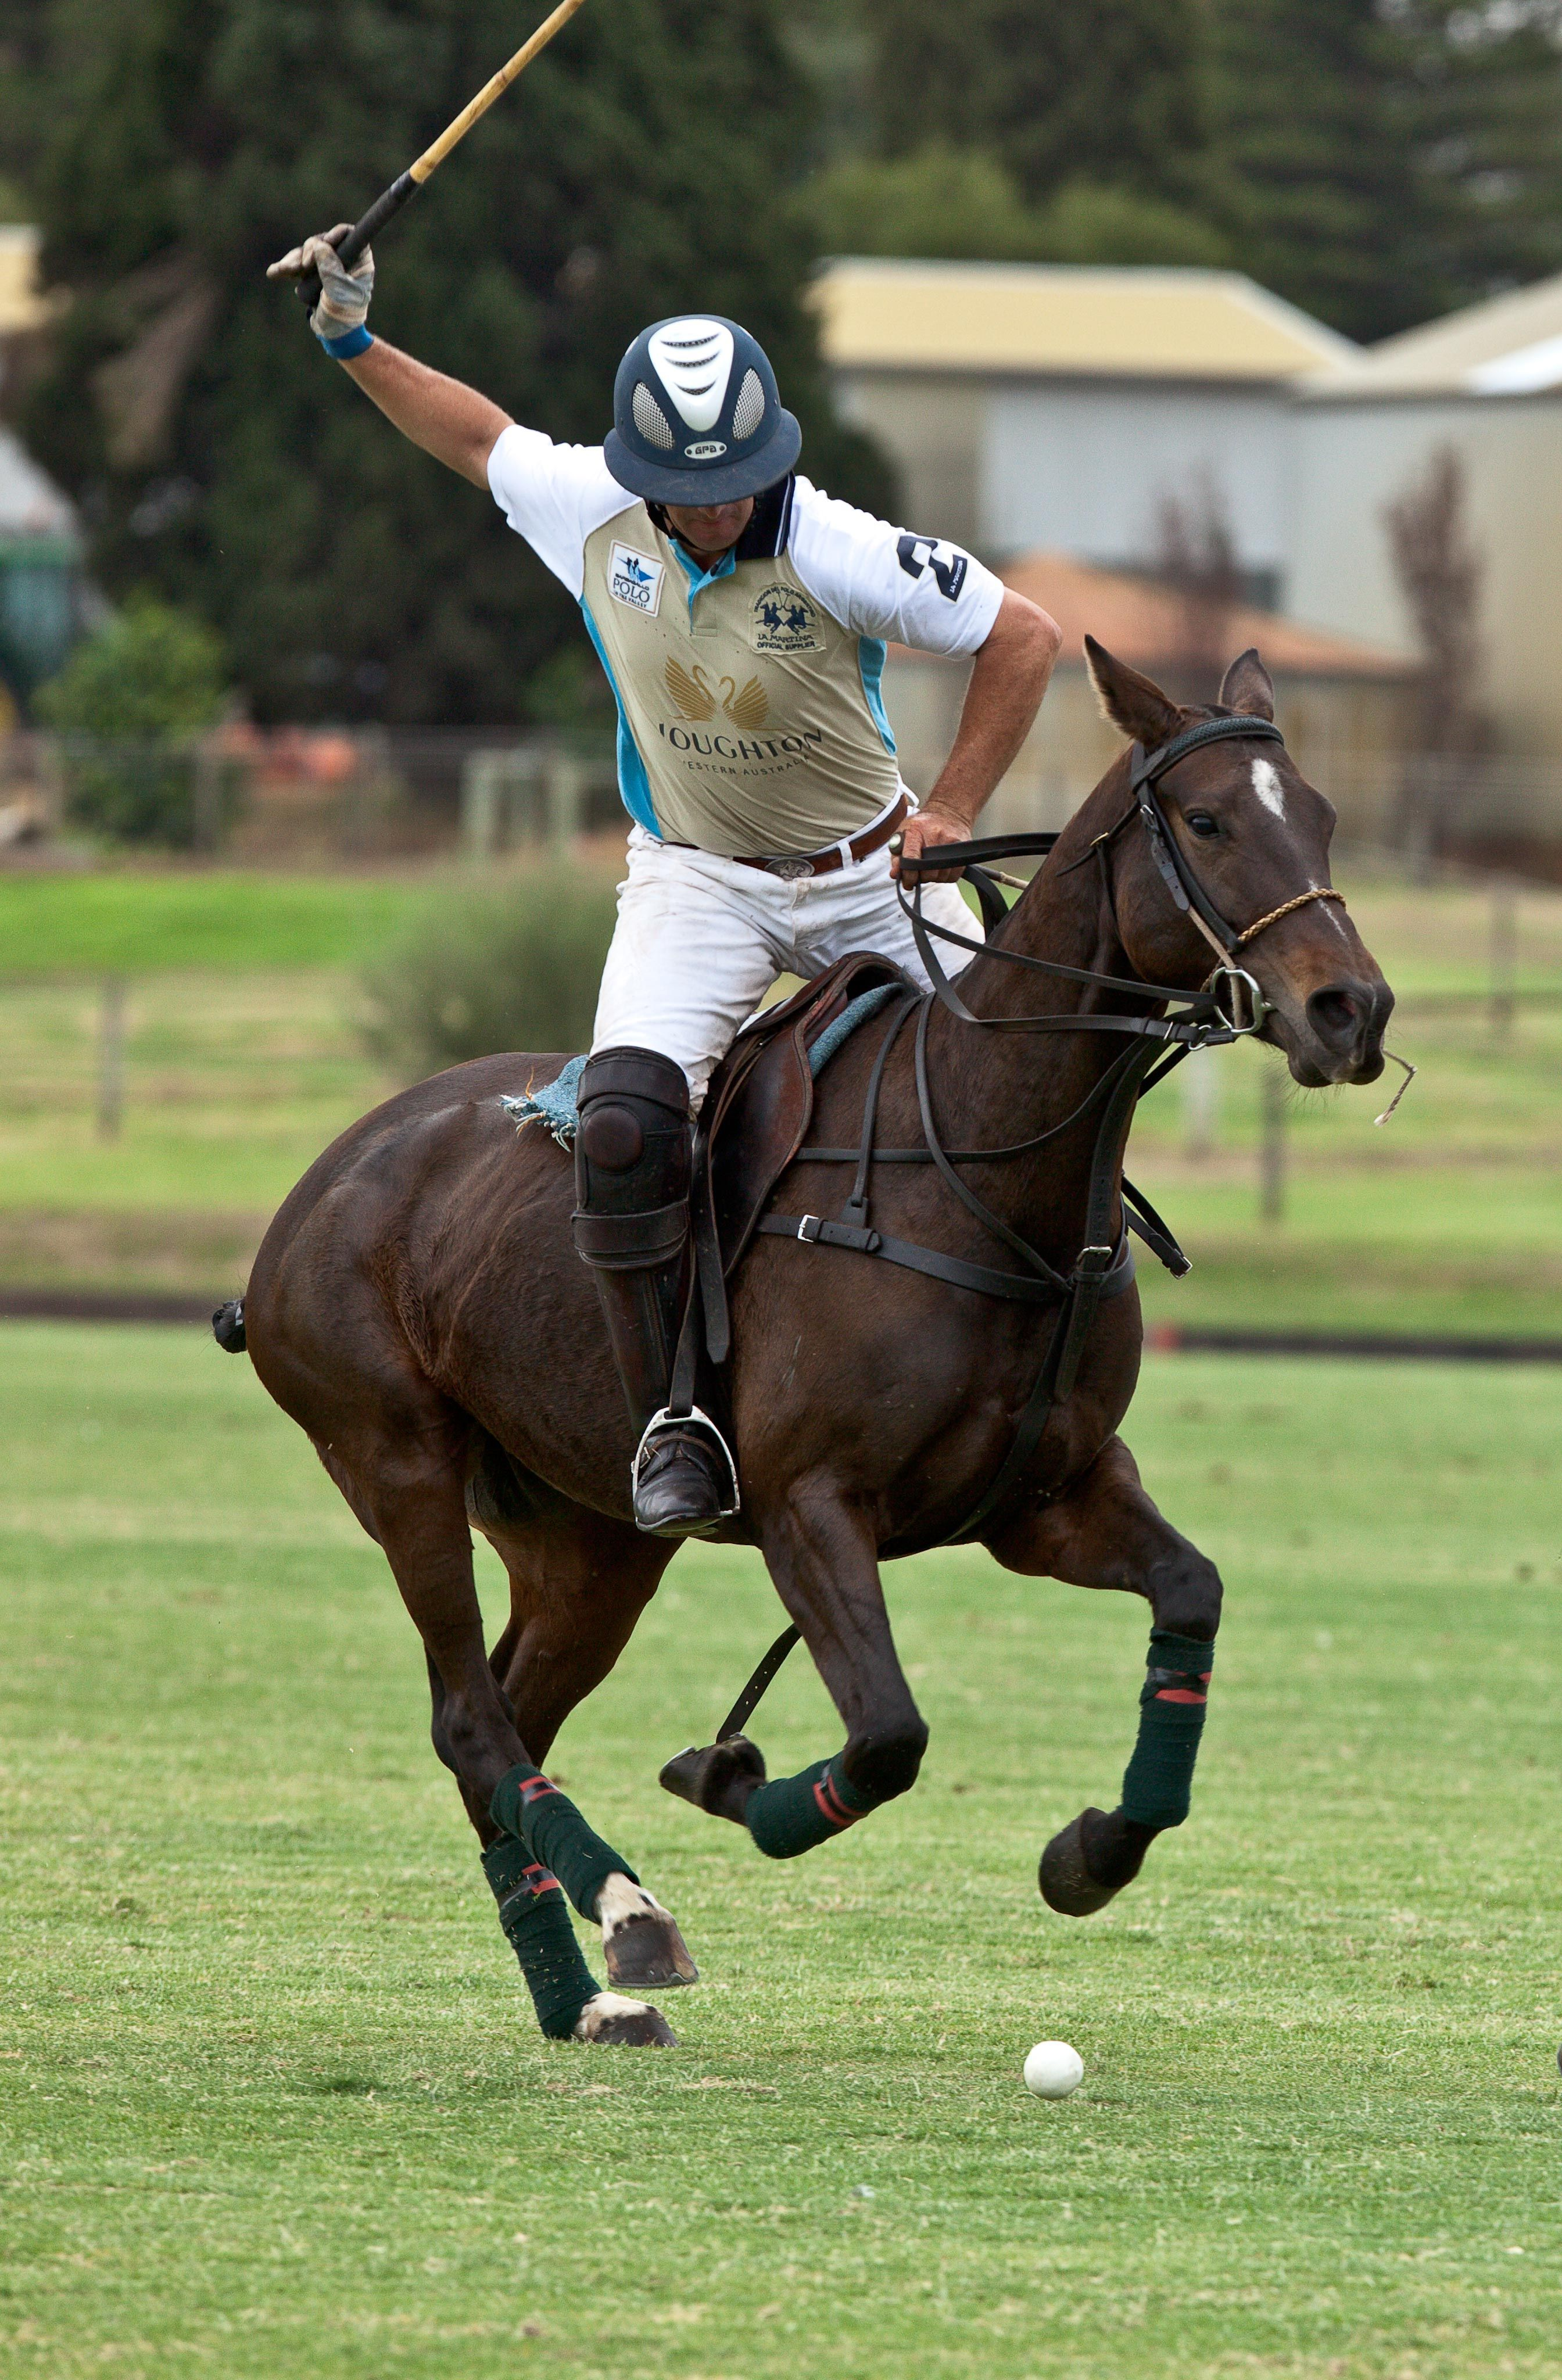 ... sale for tickets to polo in the valley 2012 head to ticketek. db0fe  87ab3 5538f6f66badb